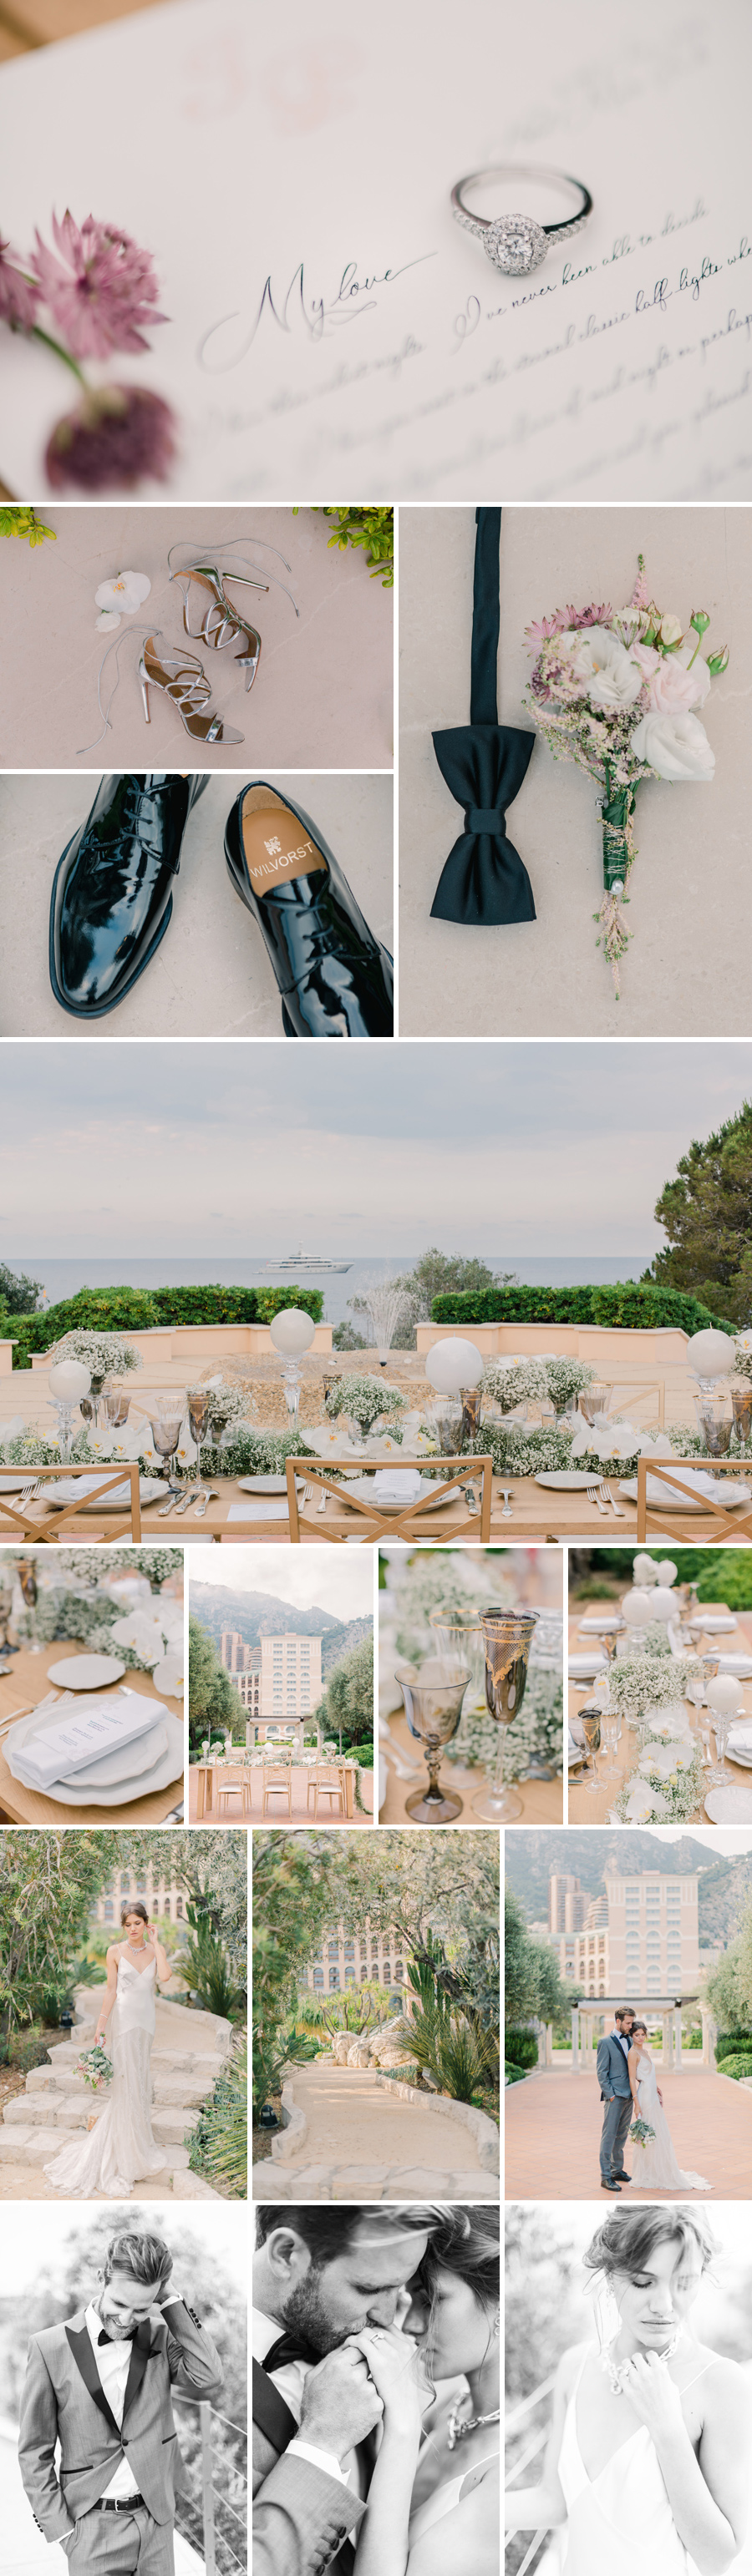 wedding photographer monte carlo bay monaco